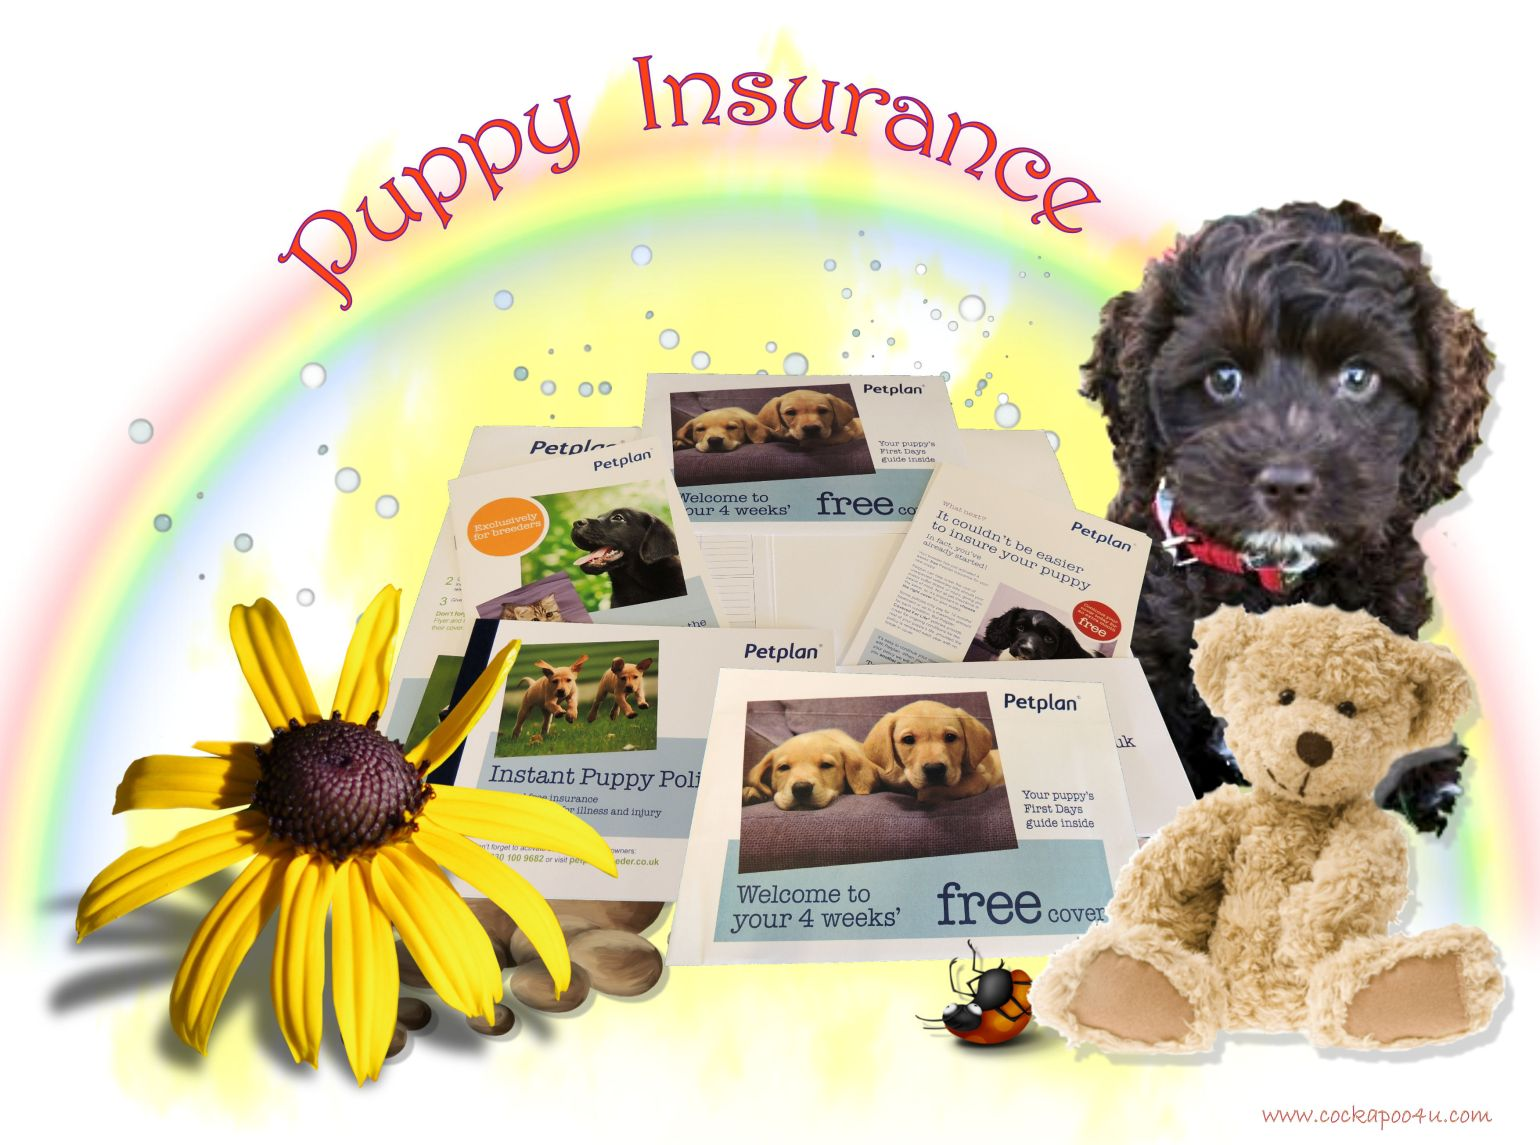 1 A Puppy Insurance signed